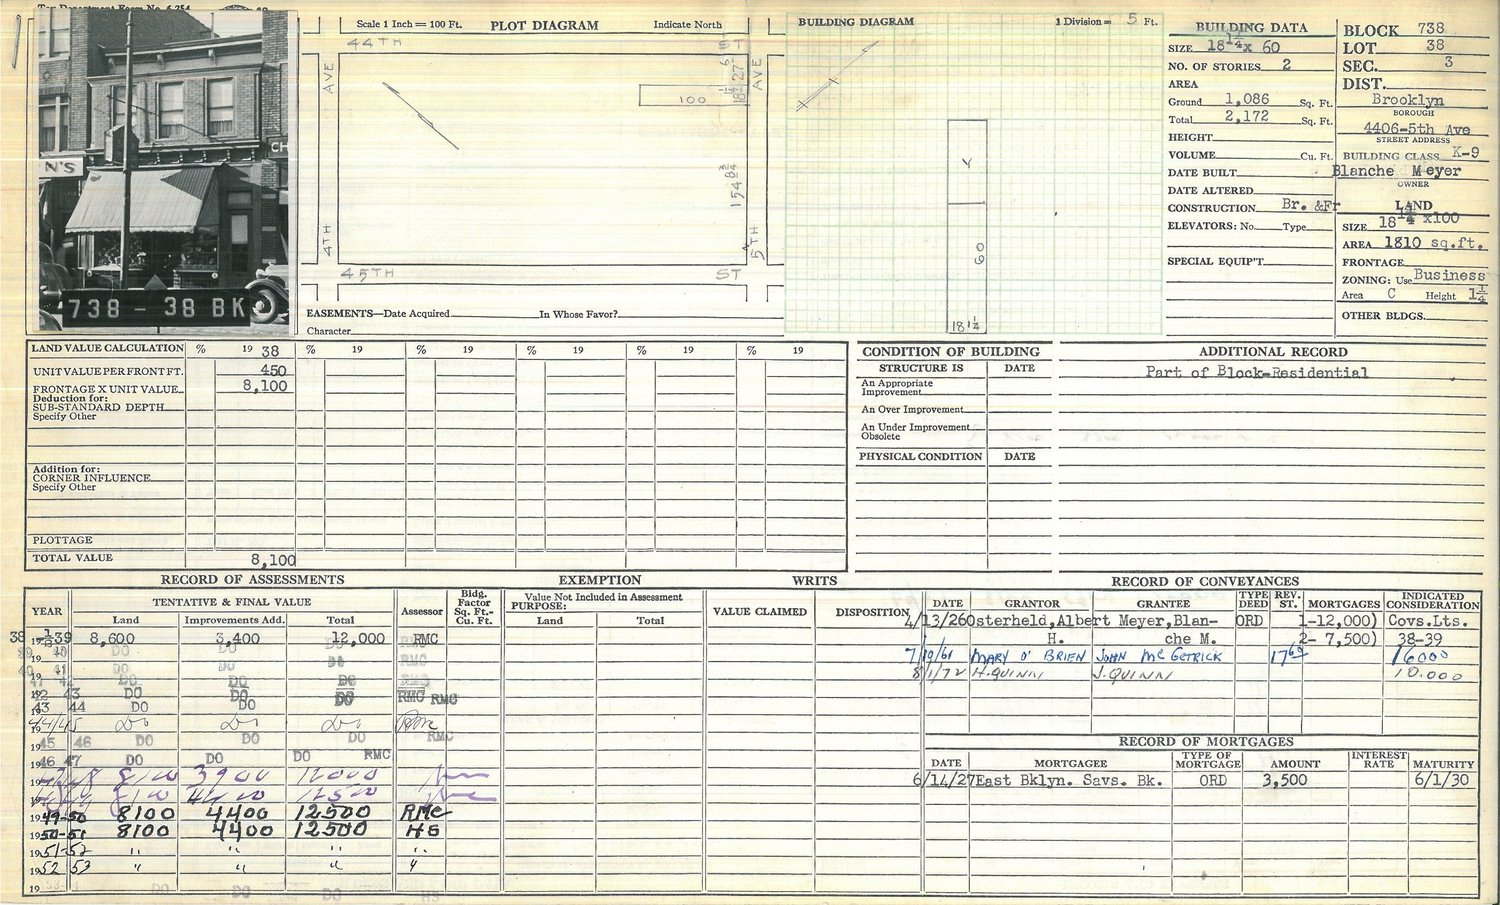 Tax form showing historical information about the building, and a ca. 1940 photograph, NYC Municipal Archives. The Lot number on the form is wrong, and the facade of the building was changed, but this is the same building, built in 1926.